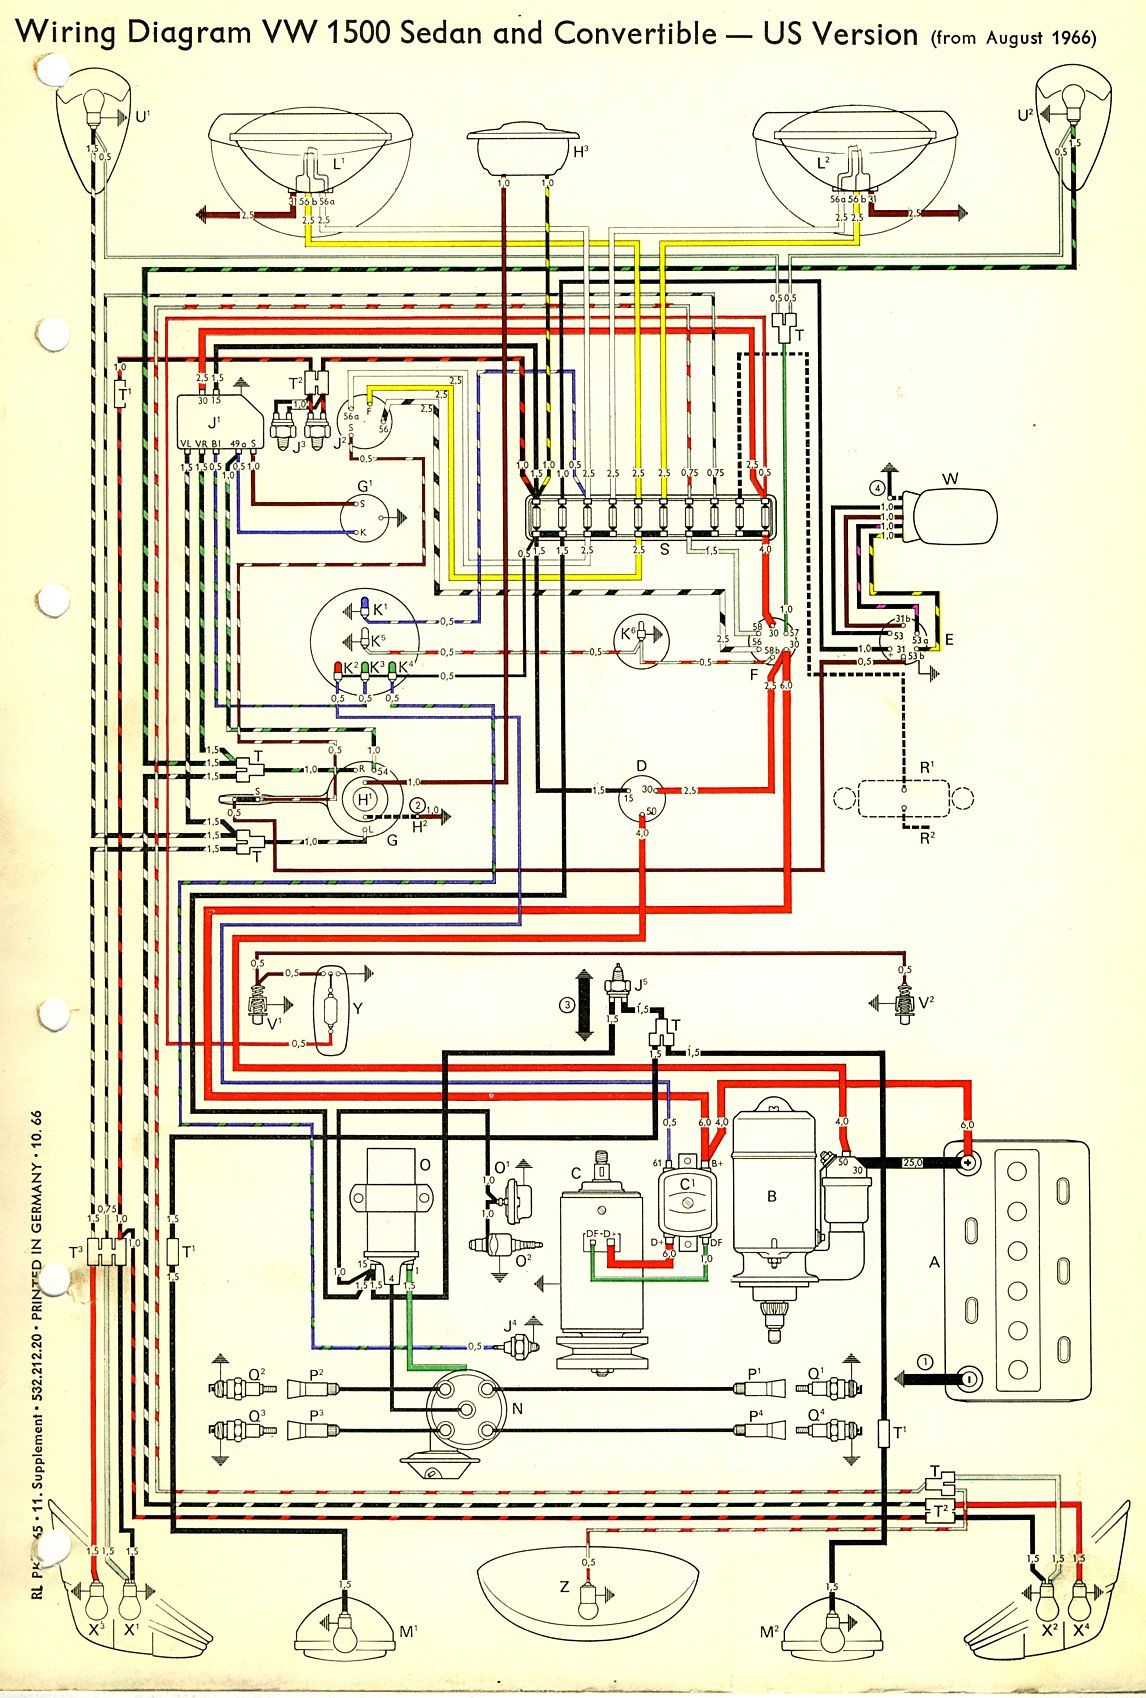 wiring 1967 diagram vw beetle ignition use wiring diagram mix 5 best images of 1967 vw [ 1146 x 1698 Pixel ]